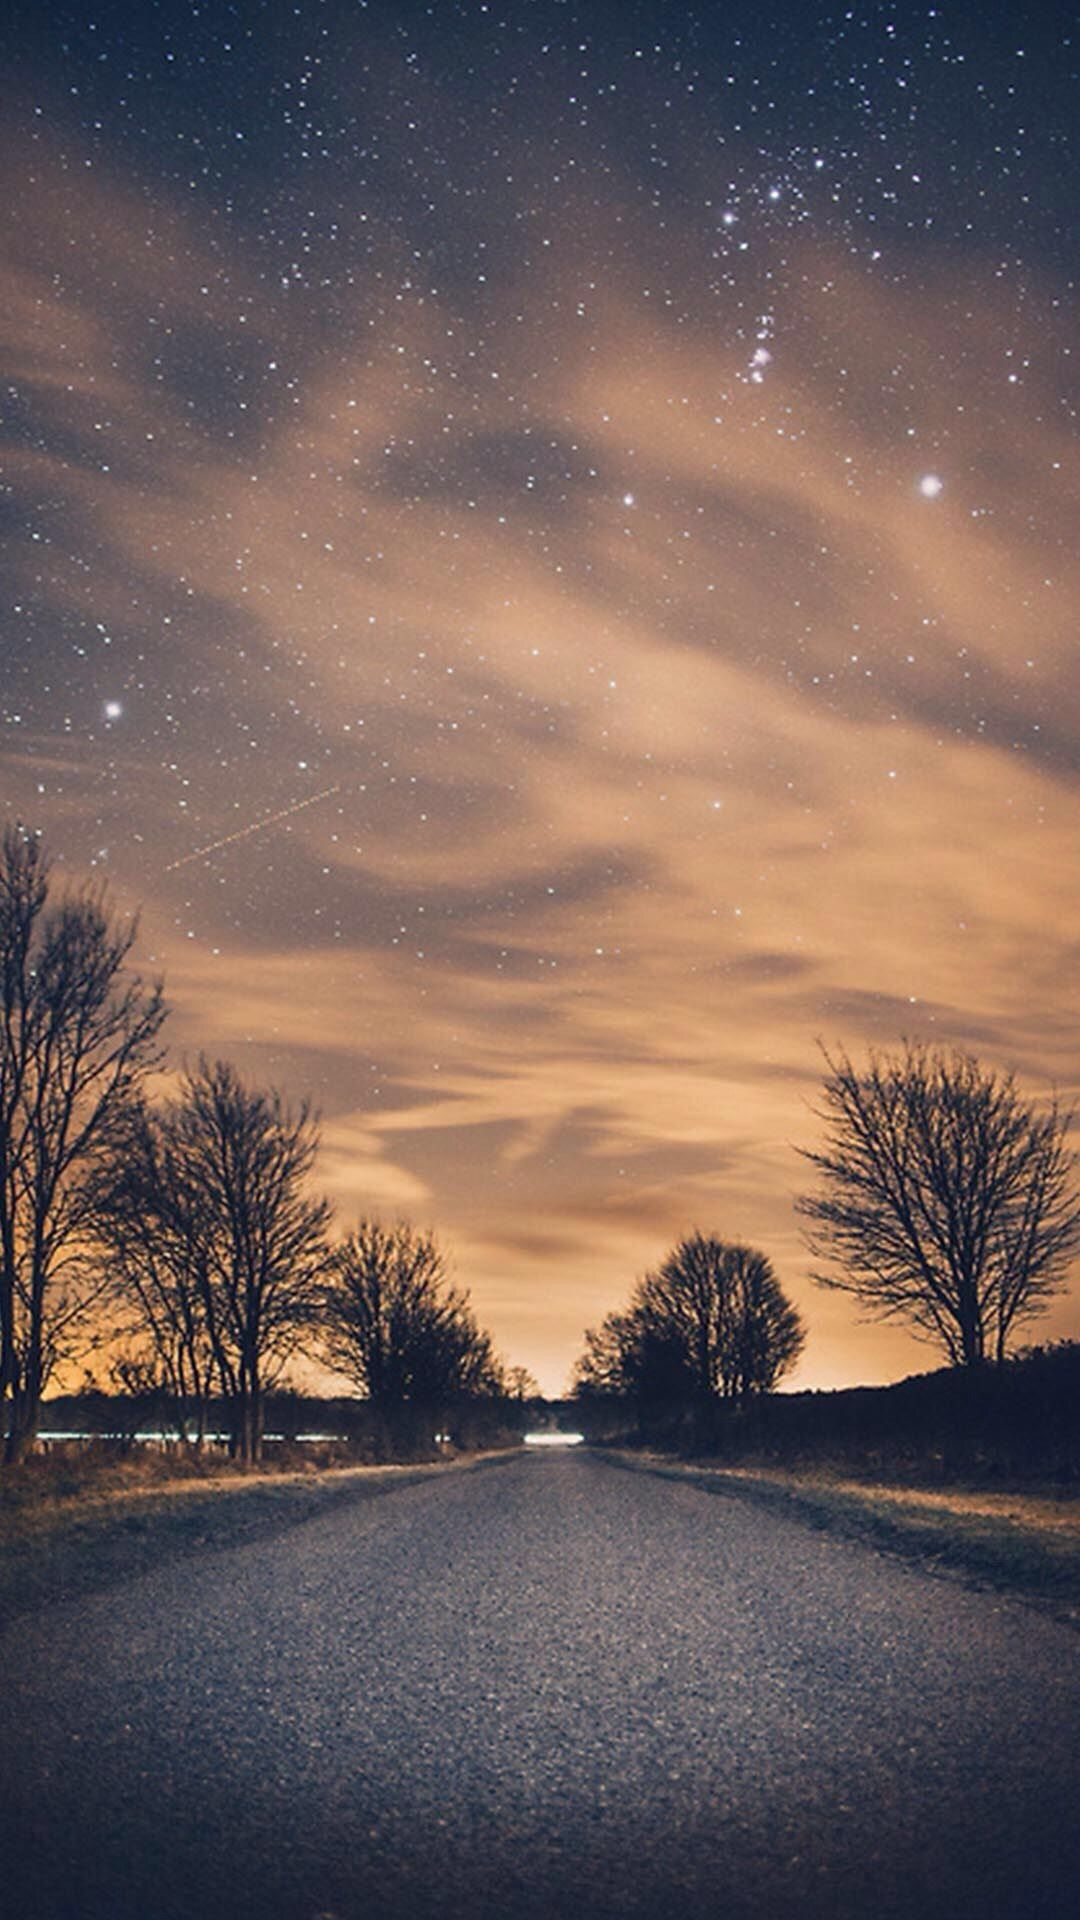 Nature Night Shiny Road Endless Tree Roadside iPhone 6 wallpaper  iPhone 6~8 Wallpapers